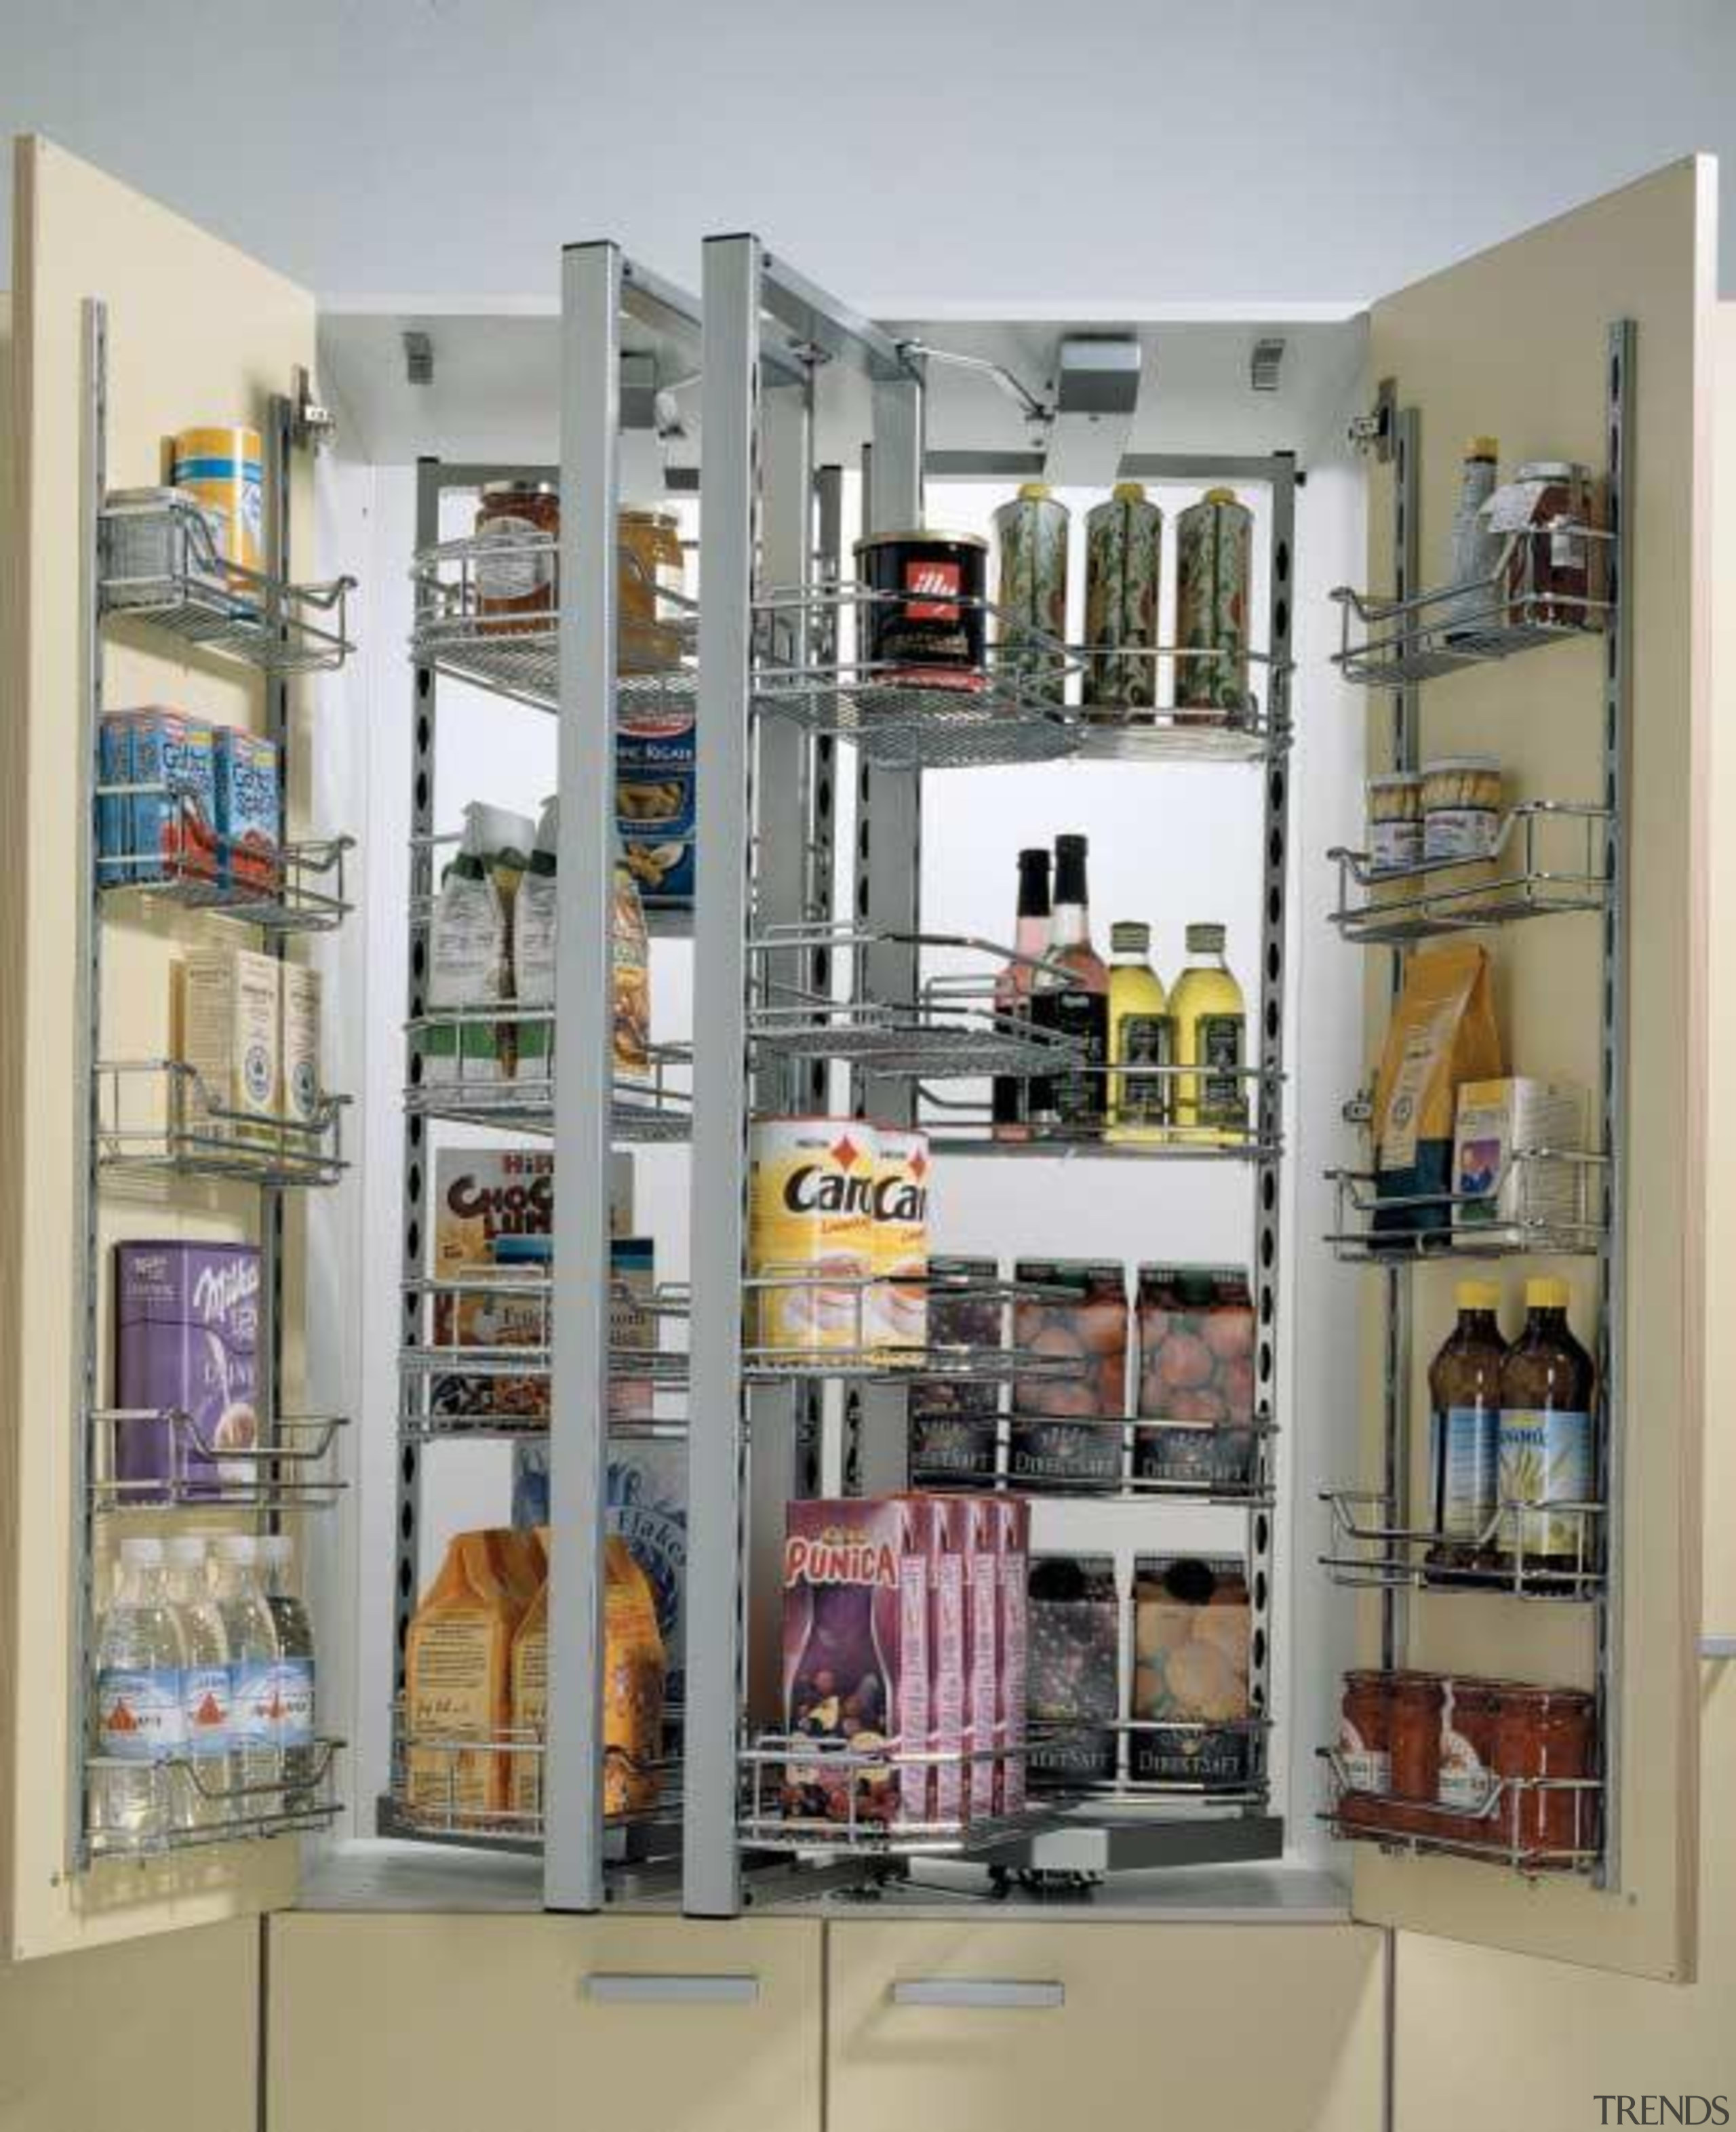 Dispensa duo unit - double - Dispensa duo bookcase, display case, furniture, inventory, pantry, shelf, shelving, gray